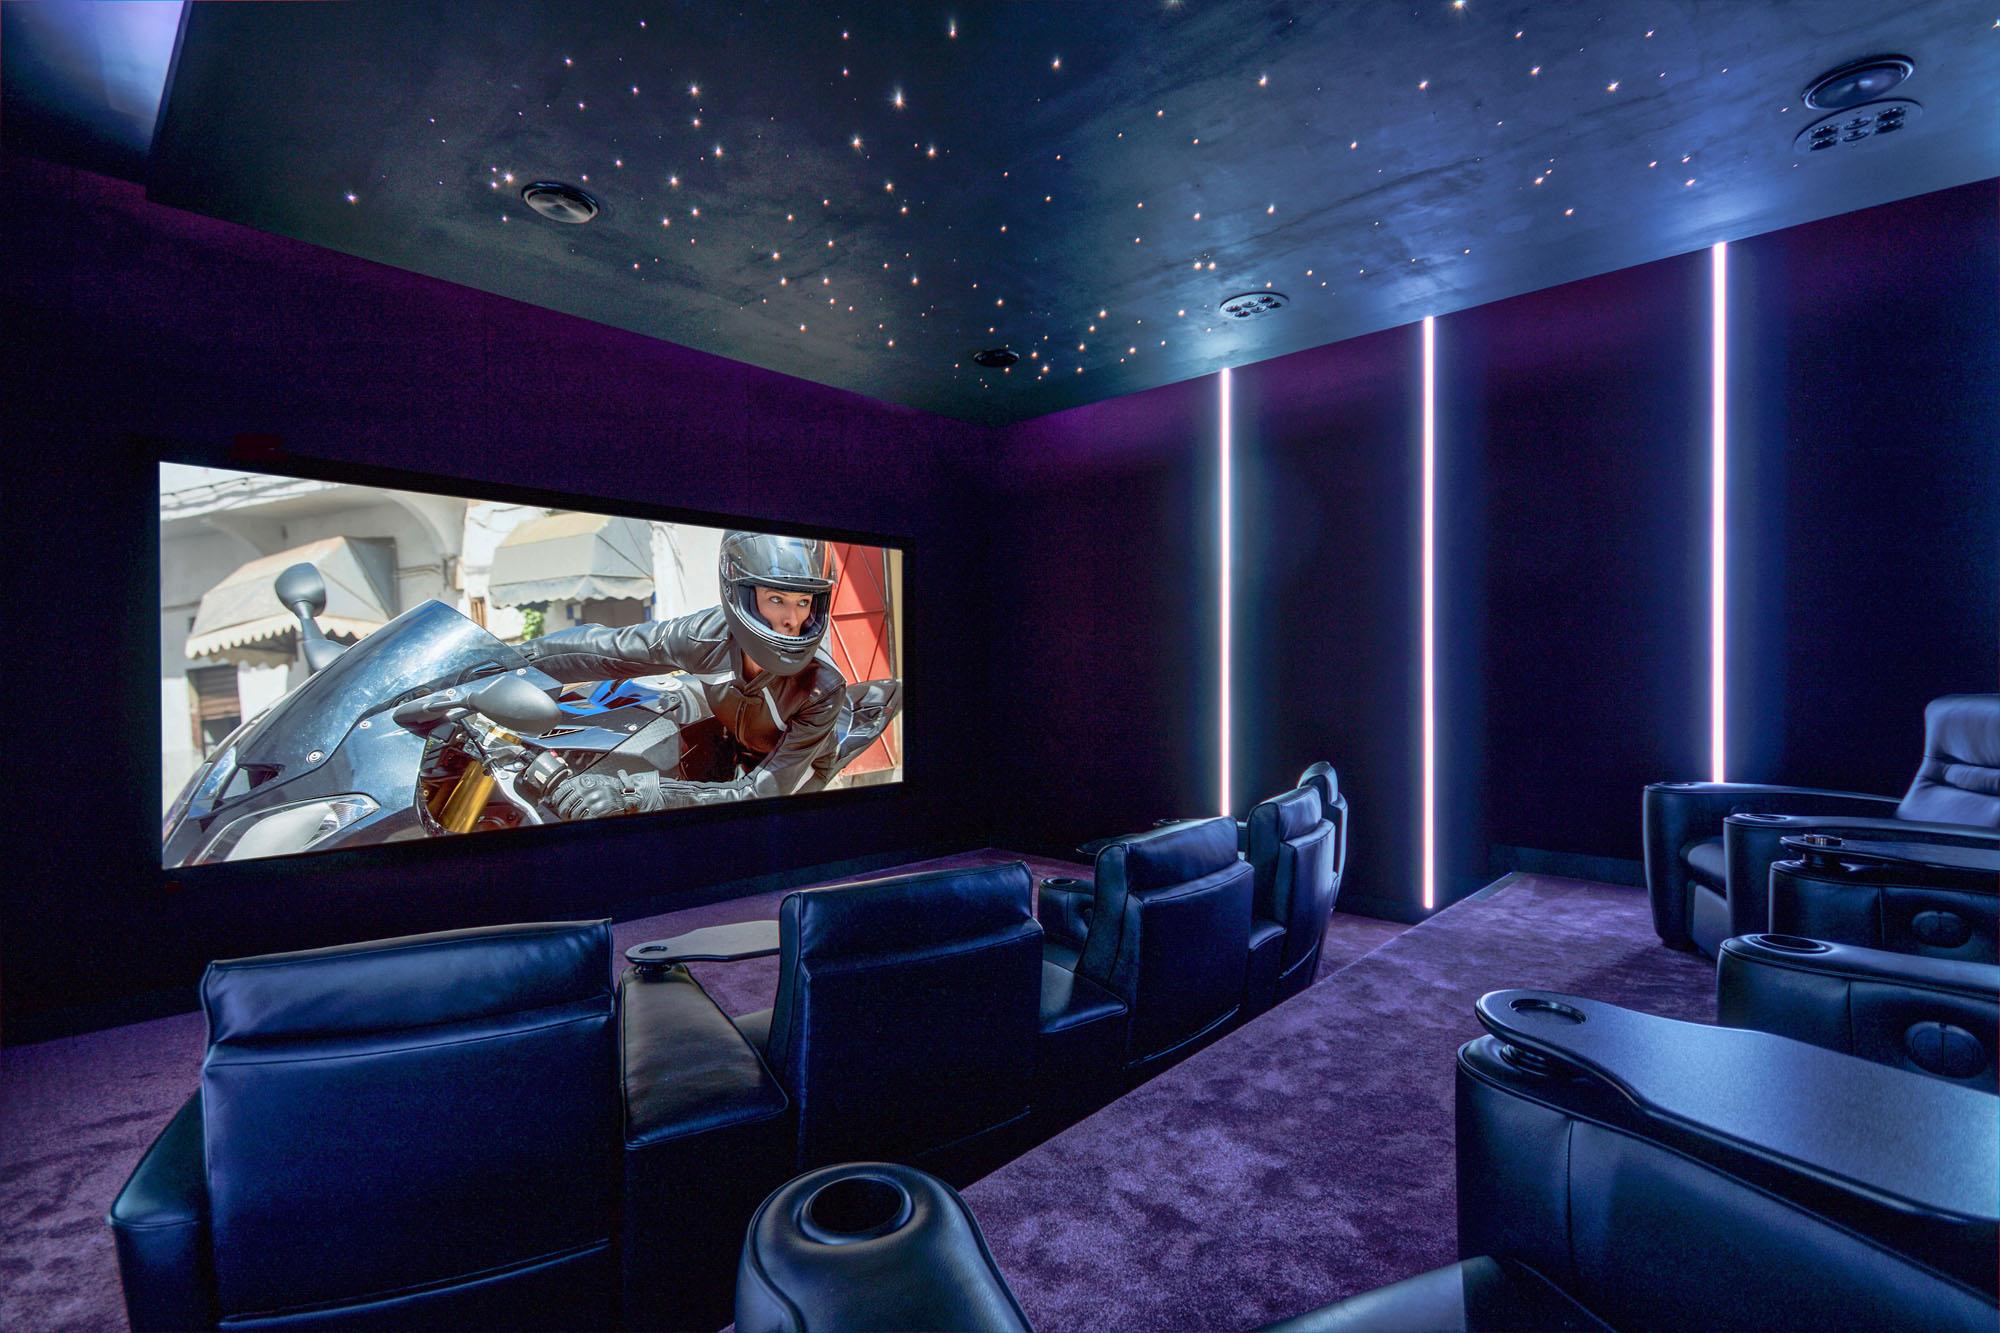 Home_Cinema_by_Futurehome_1.jpg